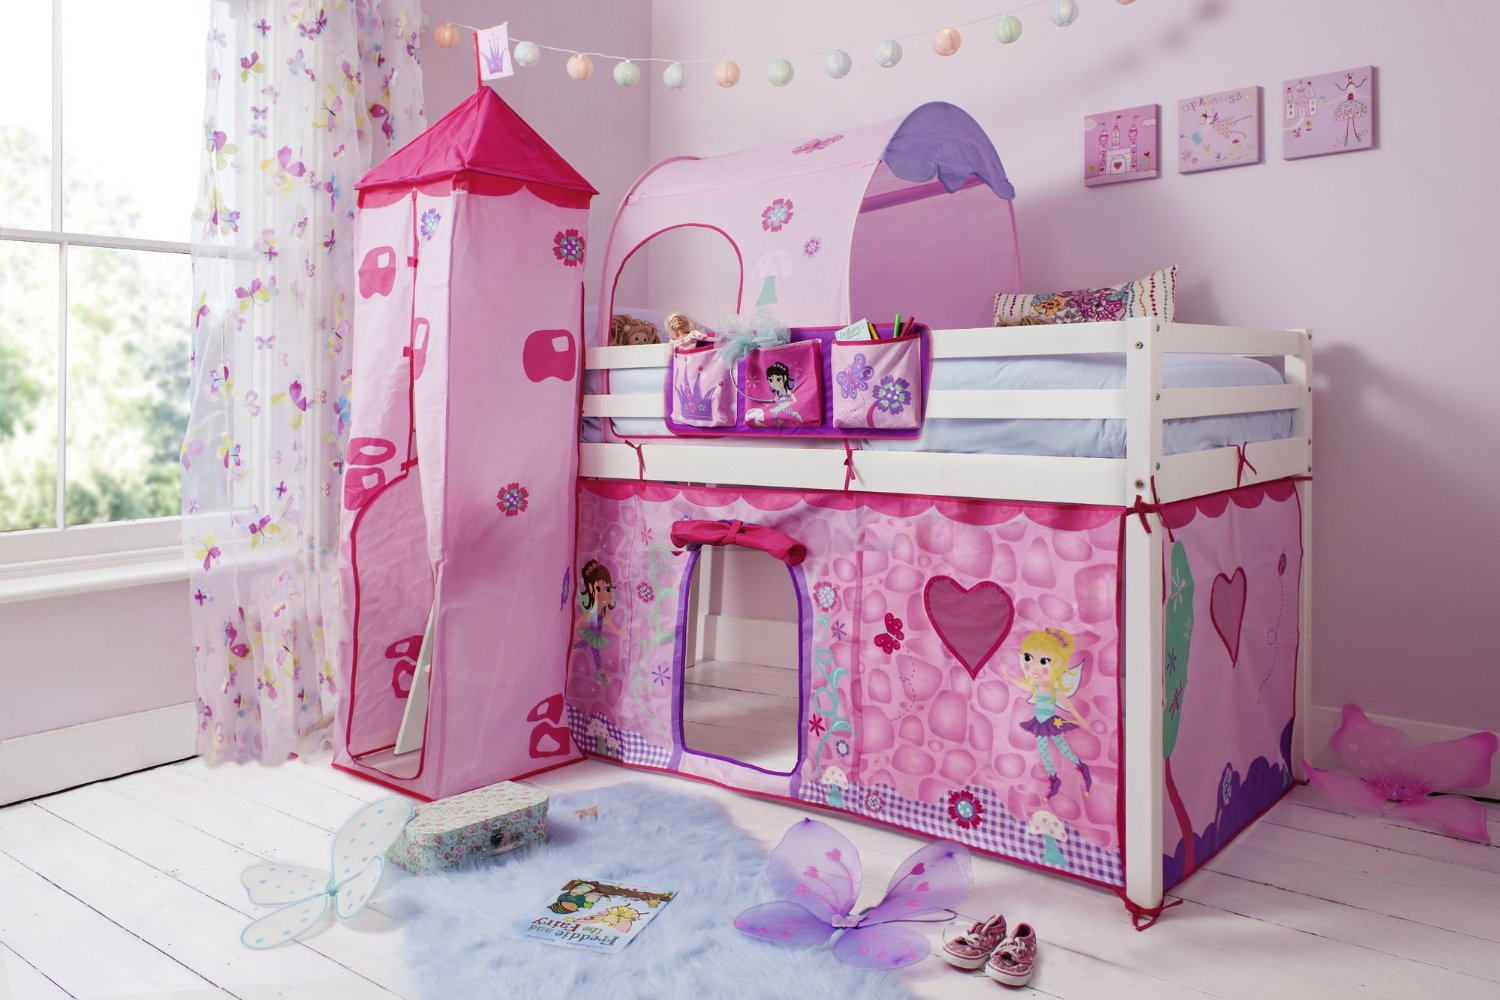 lit superpose fille princesse 28 images photos un vrai lit de princesse pour ses filles lit. Black Bedroom Furniture Sets. Home Design Ideas